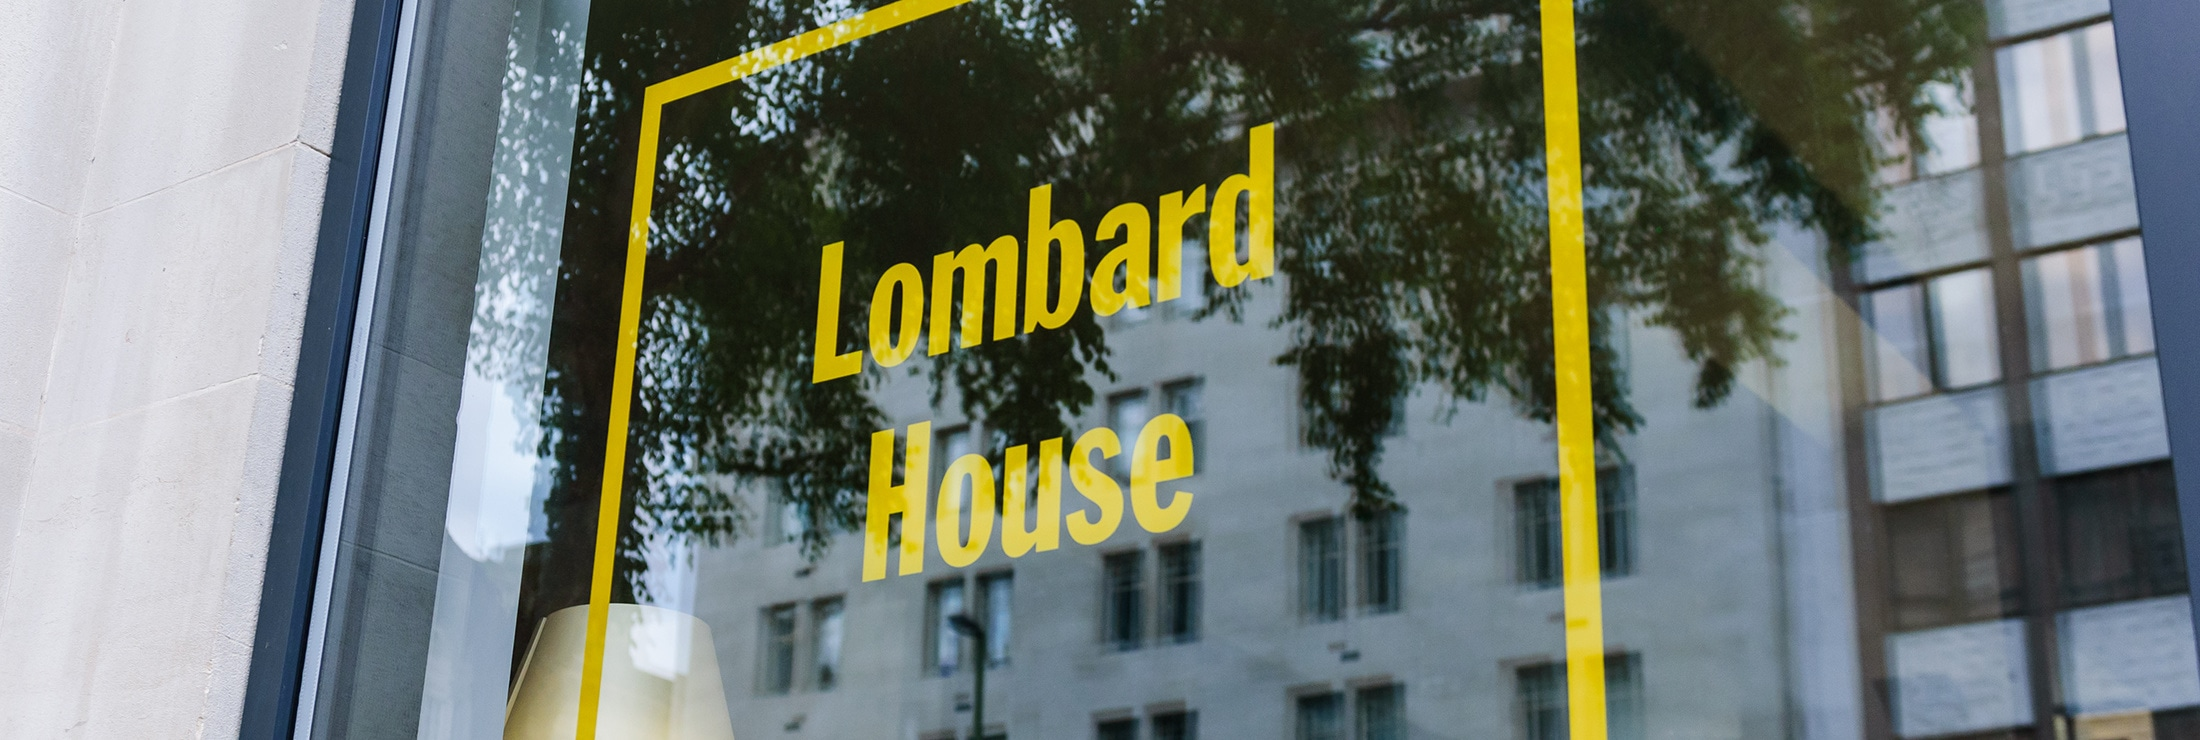 Lombard house